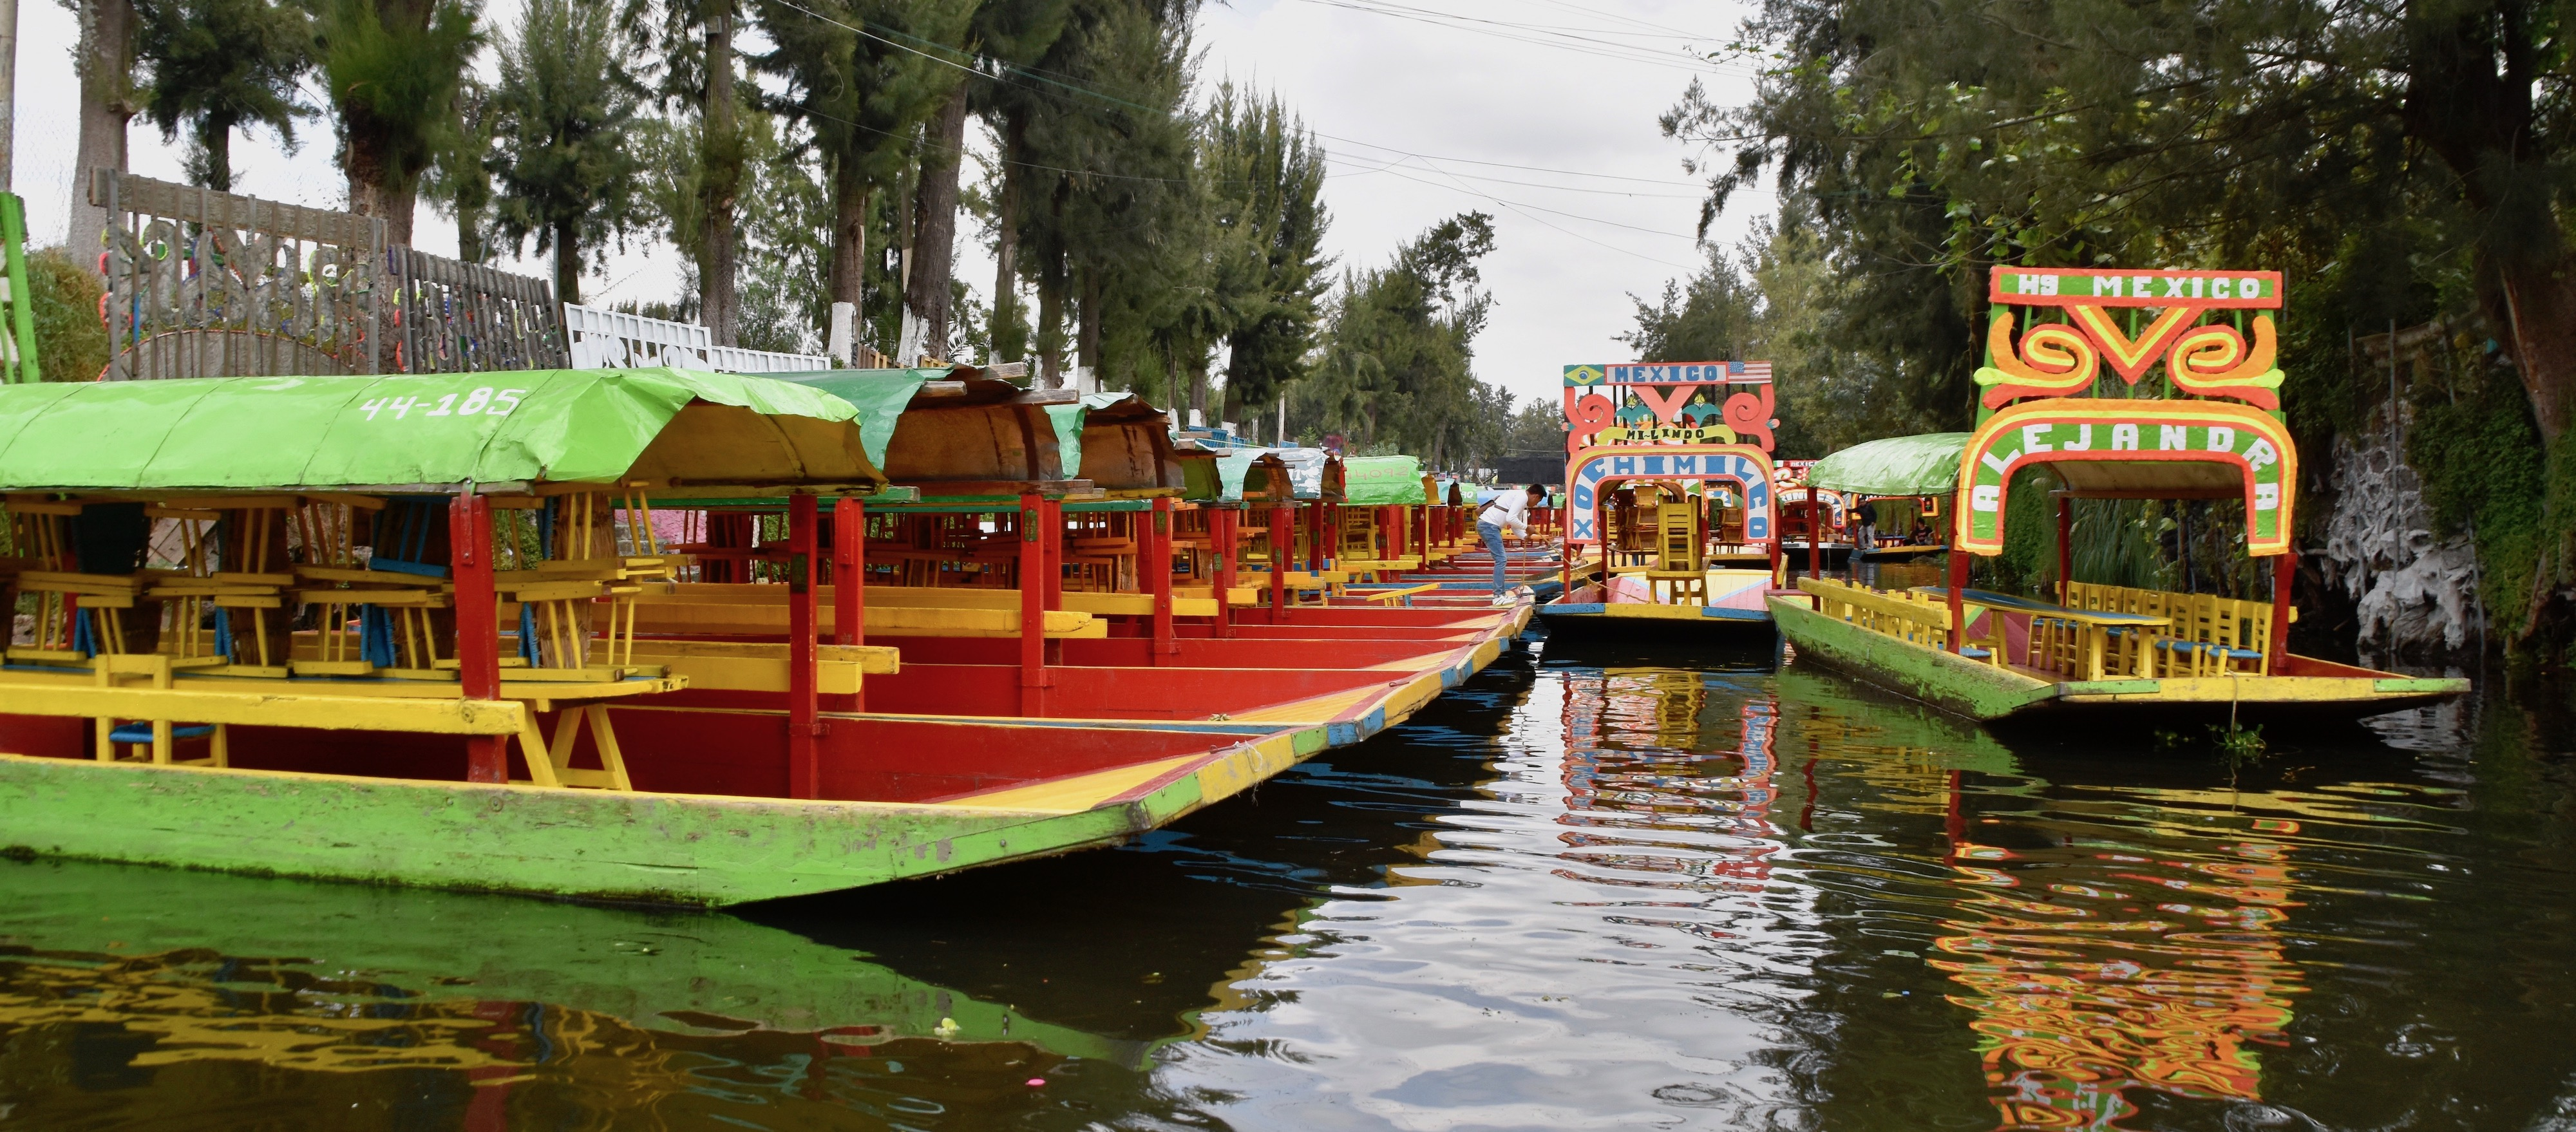 Trajineras for Rent, Xochimilco